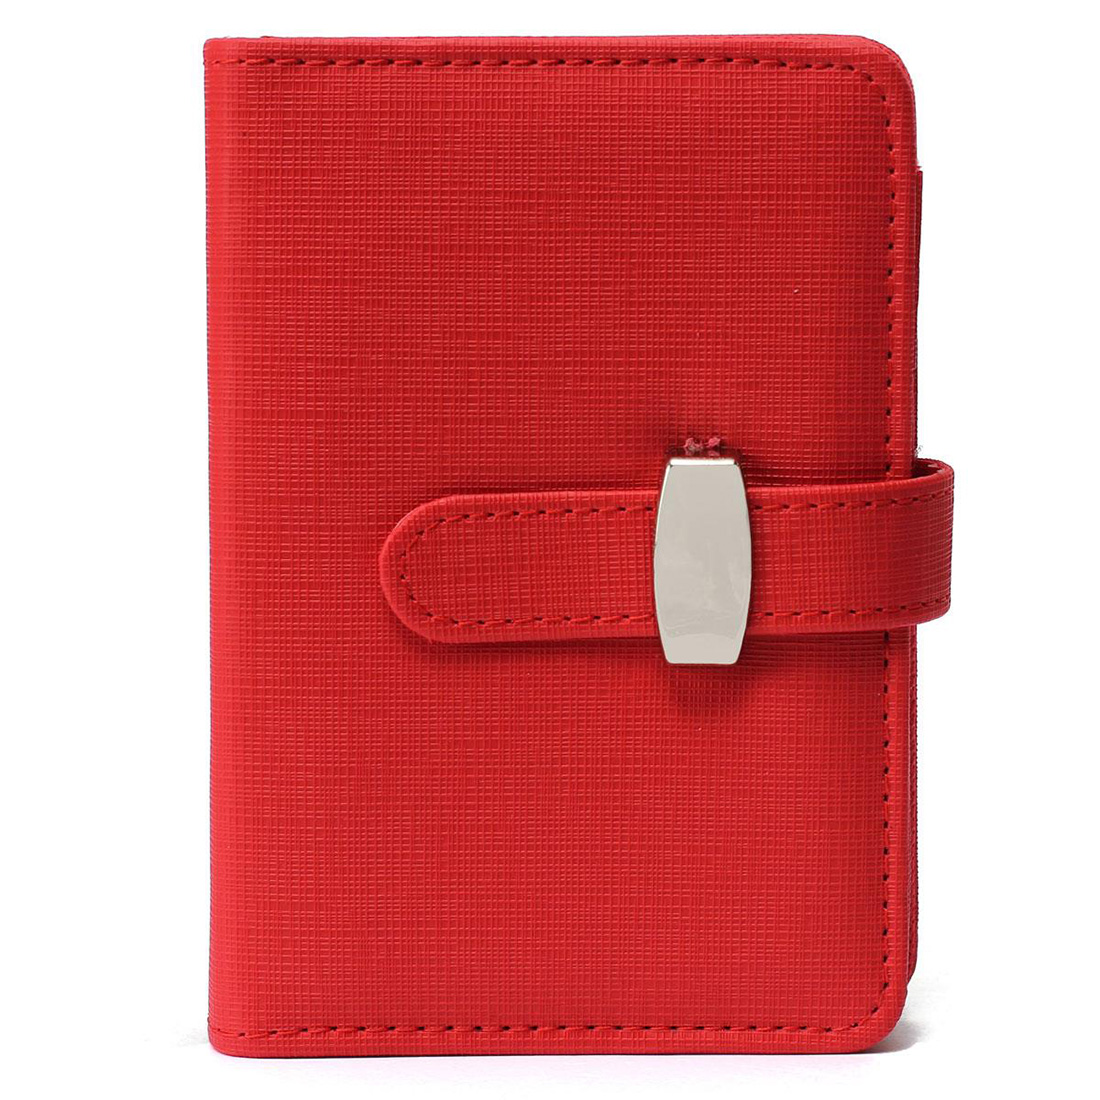 BLEL Modern Design A6 Personal Organiser Planner PU Leather Cover Diary Notebook School Office Stationery (Red)